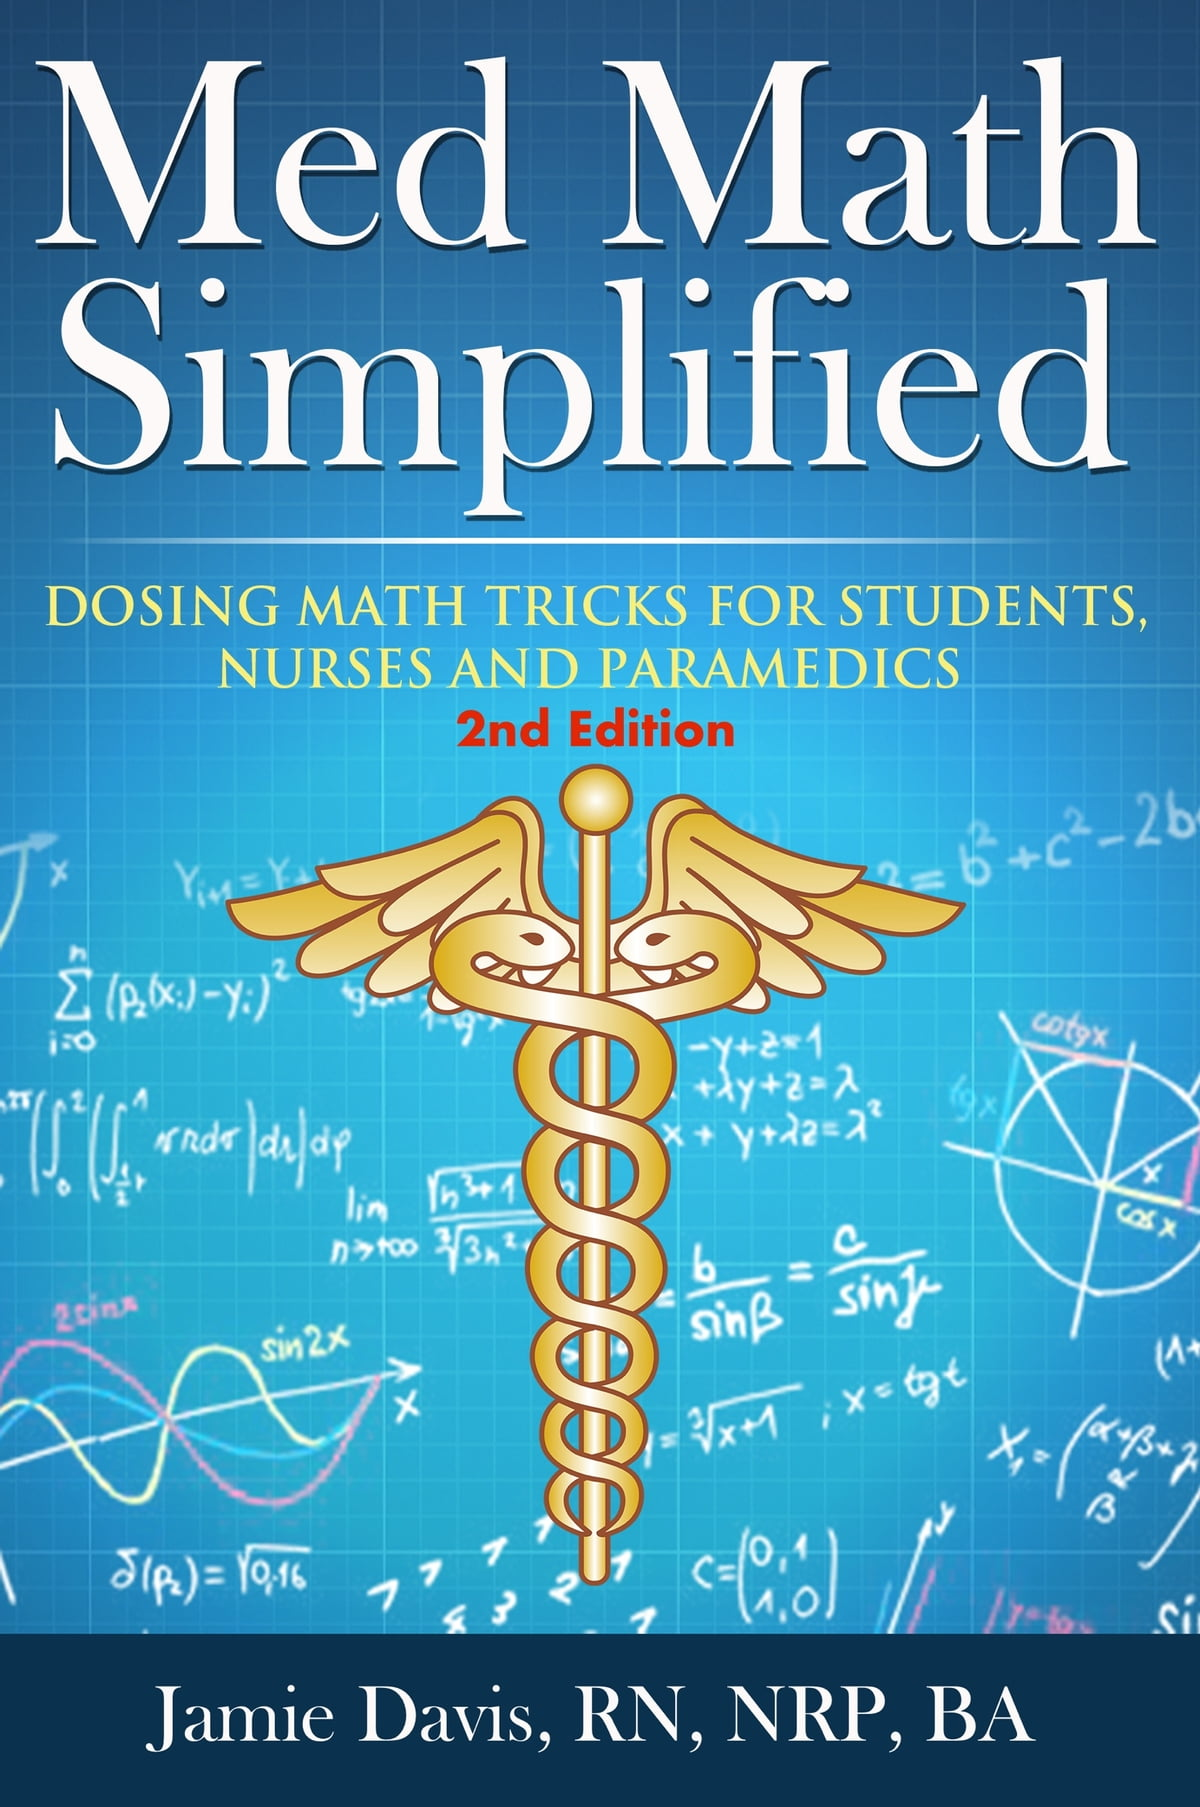 Med Math Simplified - Second Edition eBook by Jamie Davis, RN, NRP ...